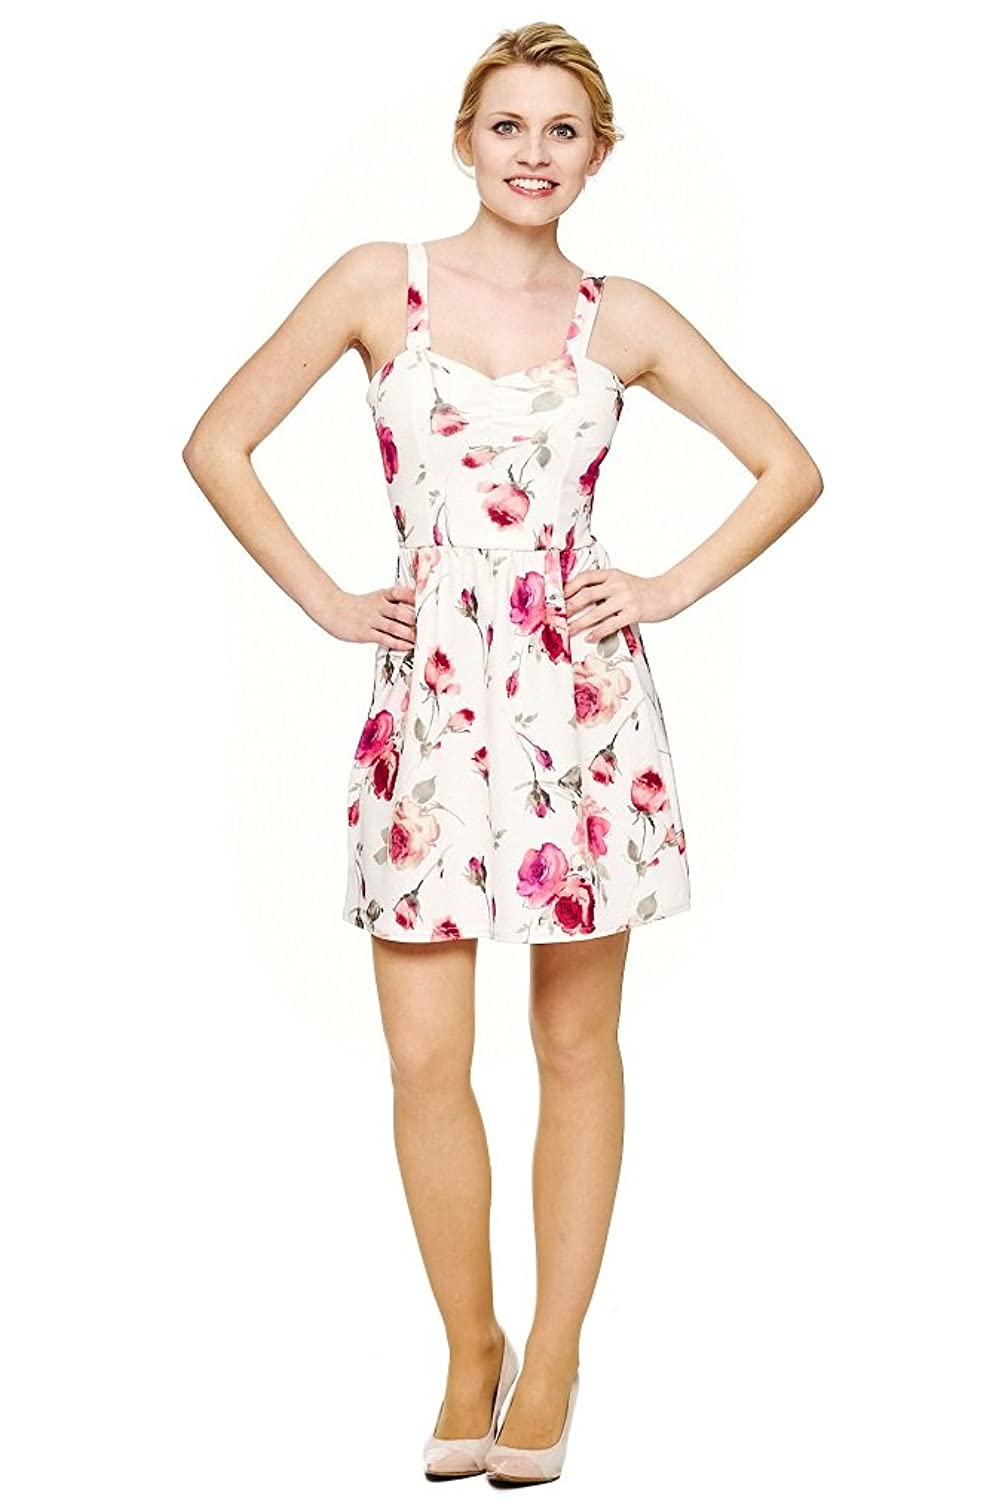 Damen Sommerkleid mit Blumen skater dress mini kleid Damen ...